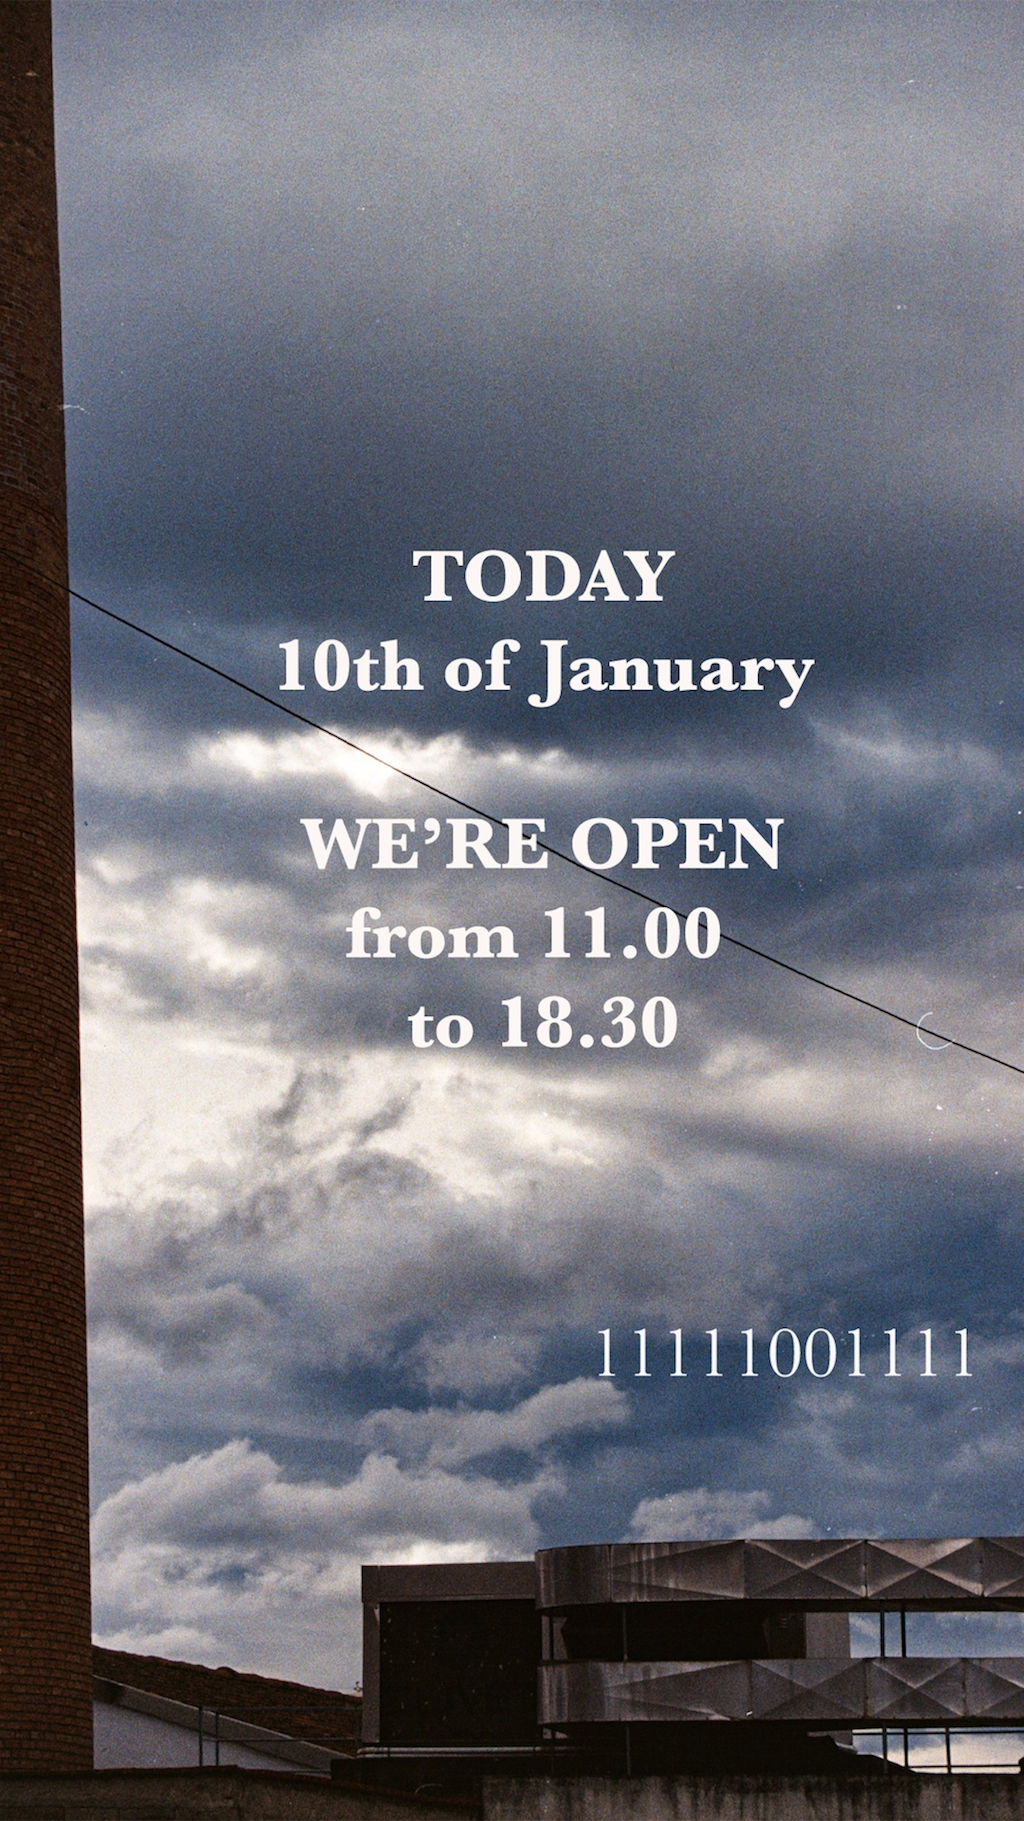 TODAY, 10th of January WE'RE OPEN!